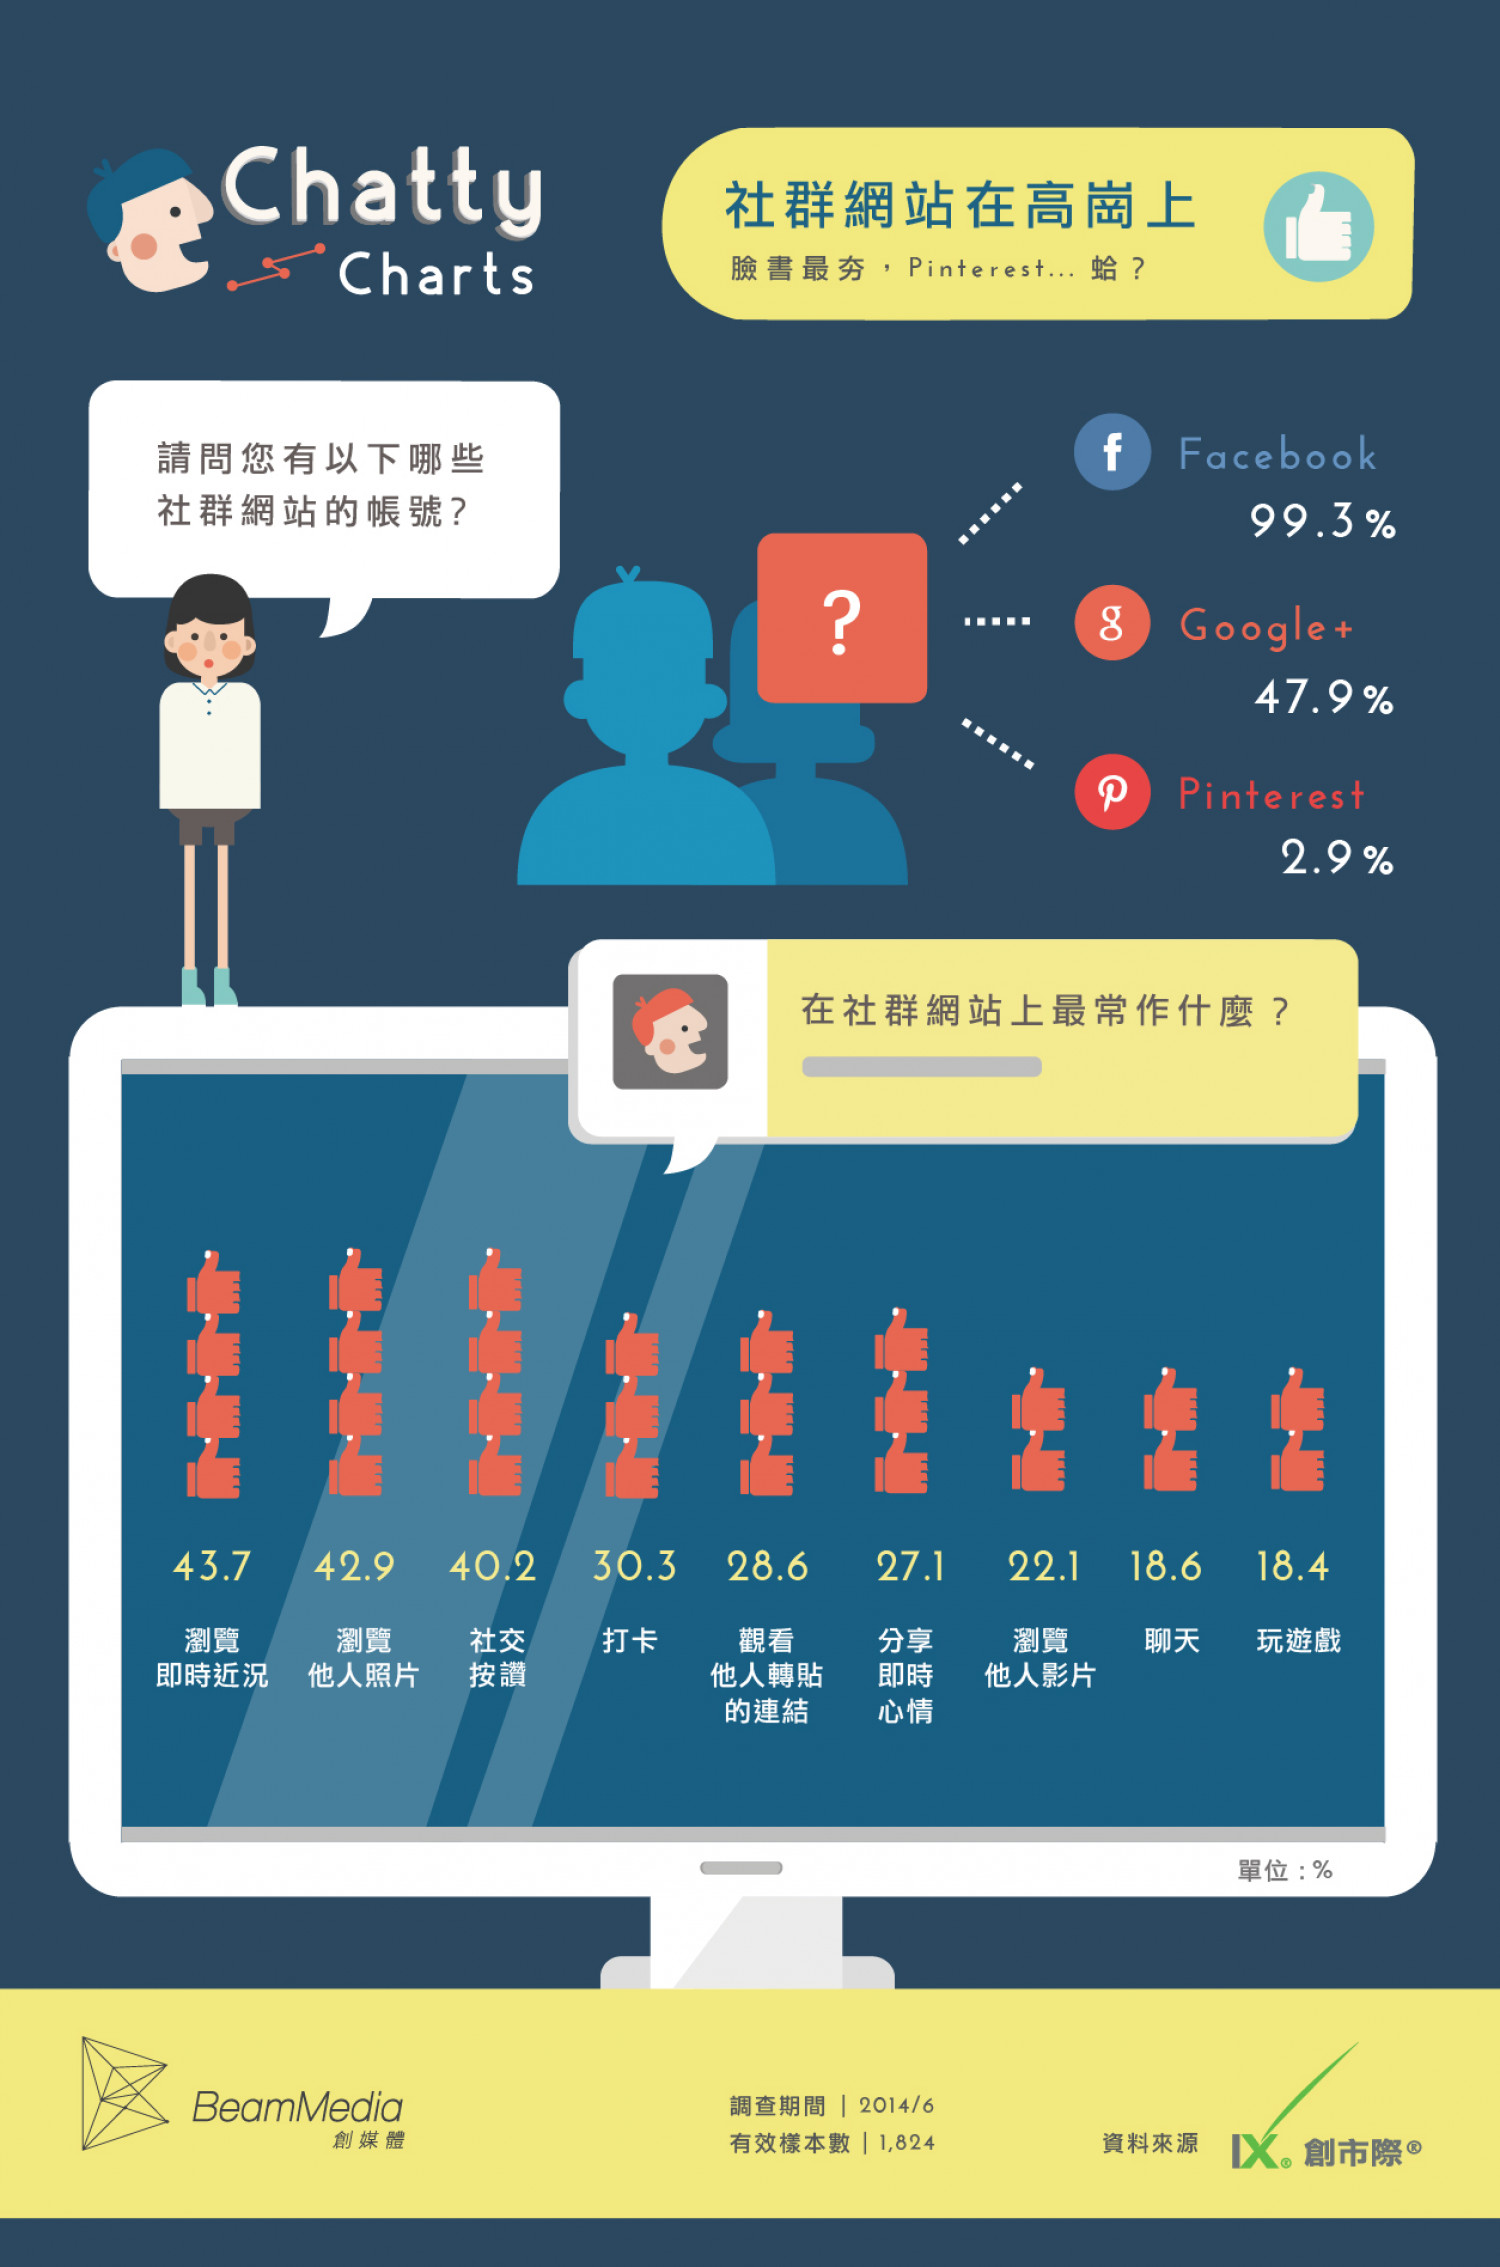 Chatty Charts - Everyone Has a Social Network Passport Infographic